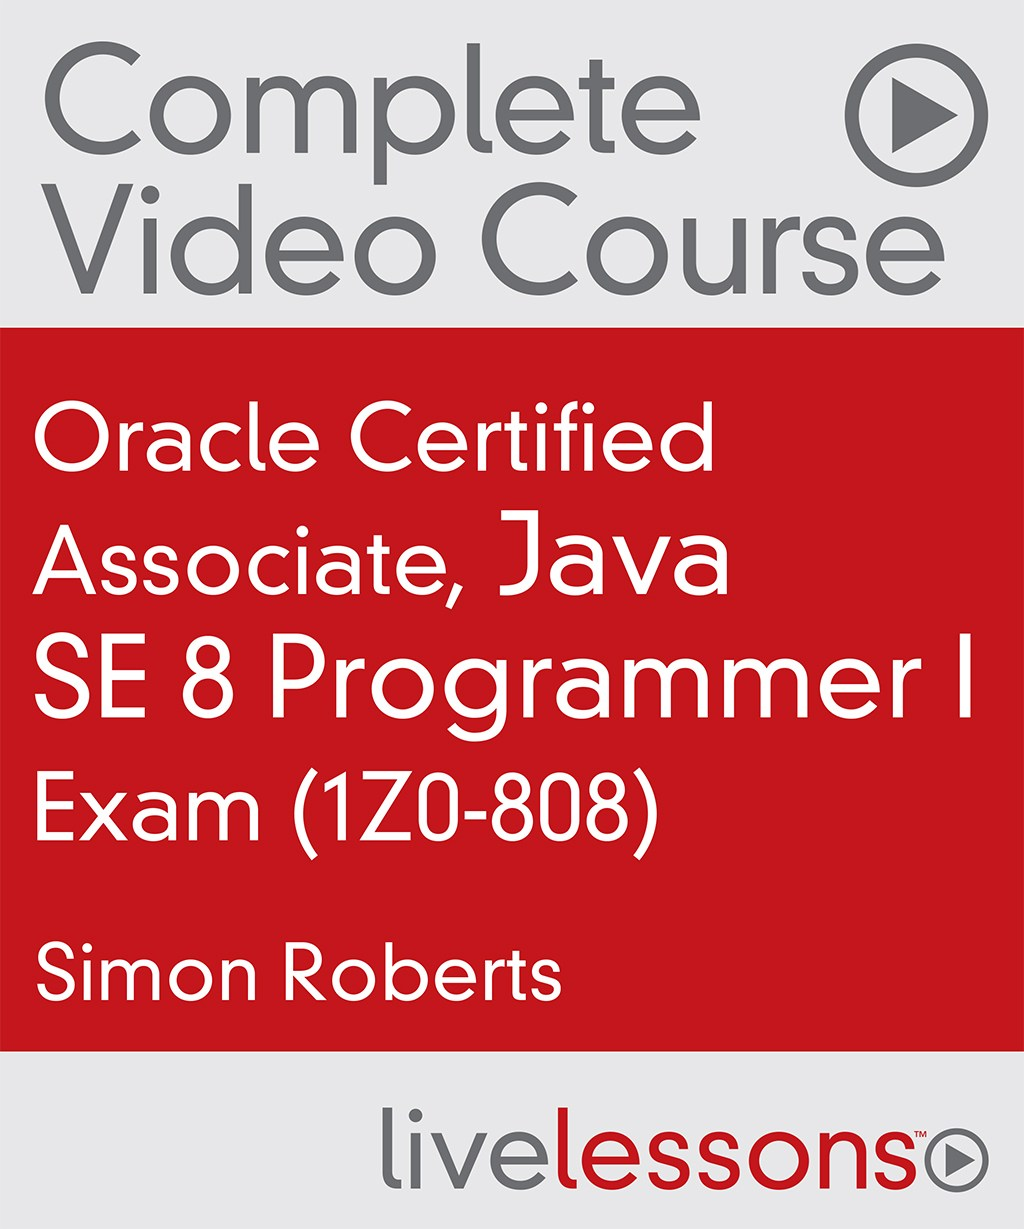 Oracle Certified Associate, Java SE 7 Programmer Exam (1Z0-803)